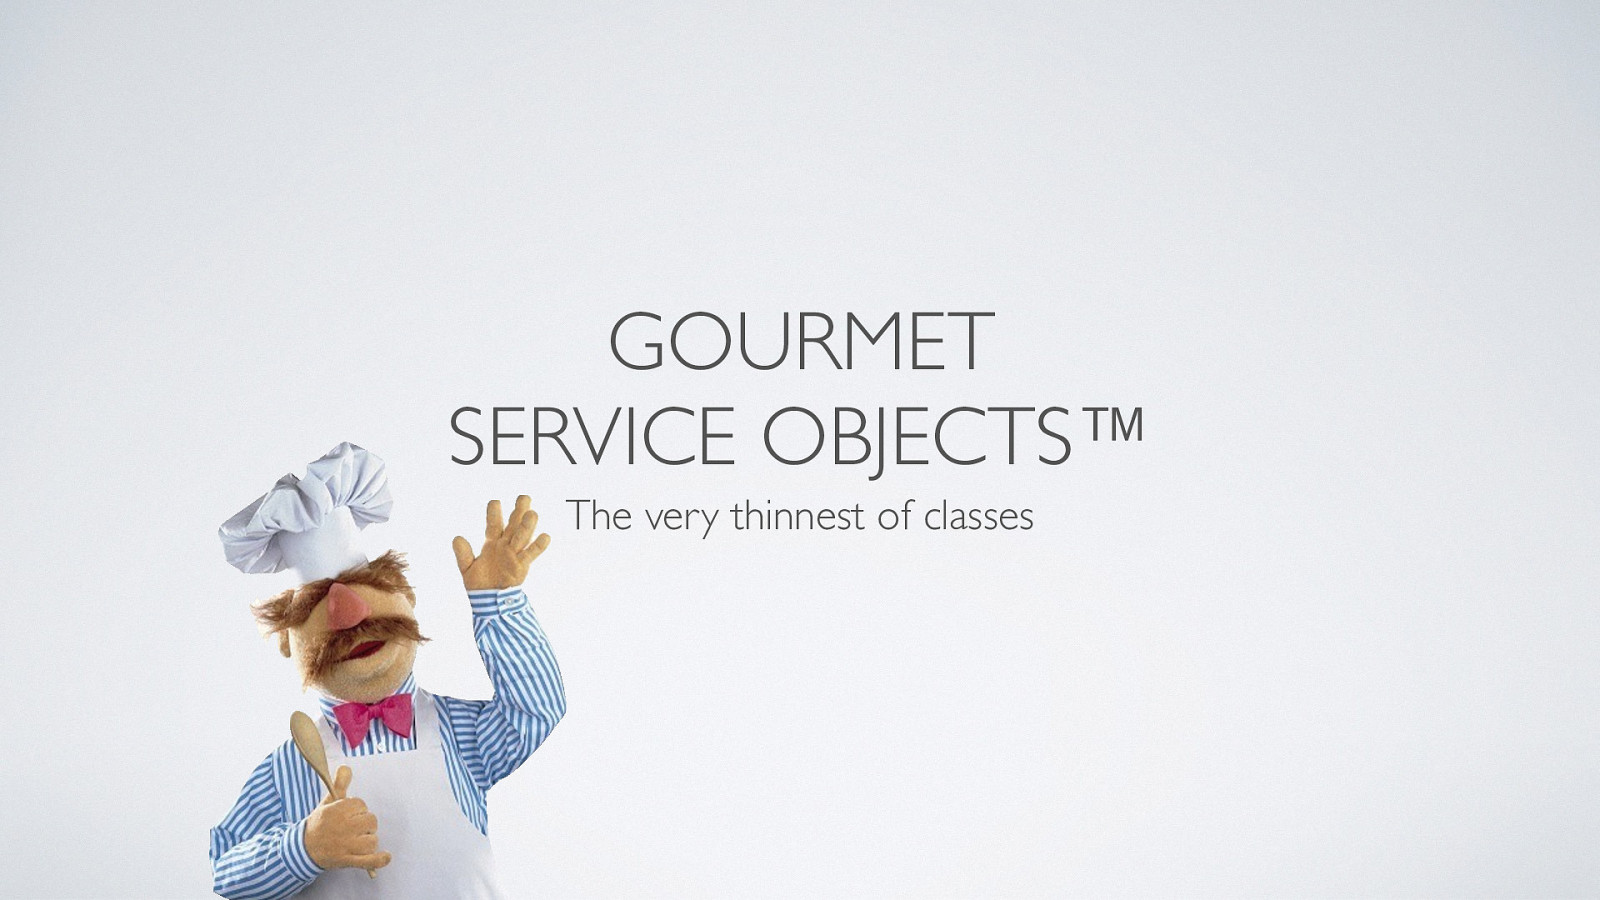 Gourmet Service Objects